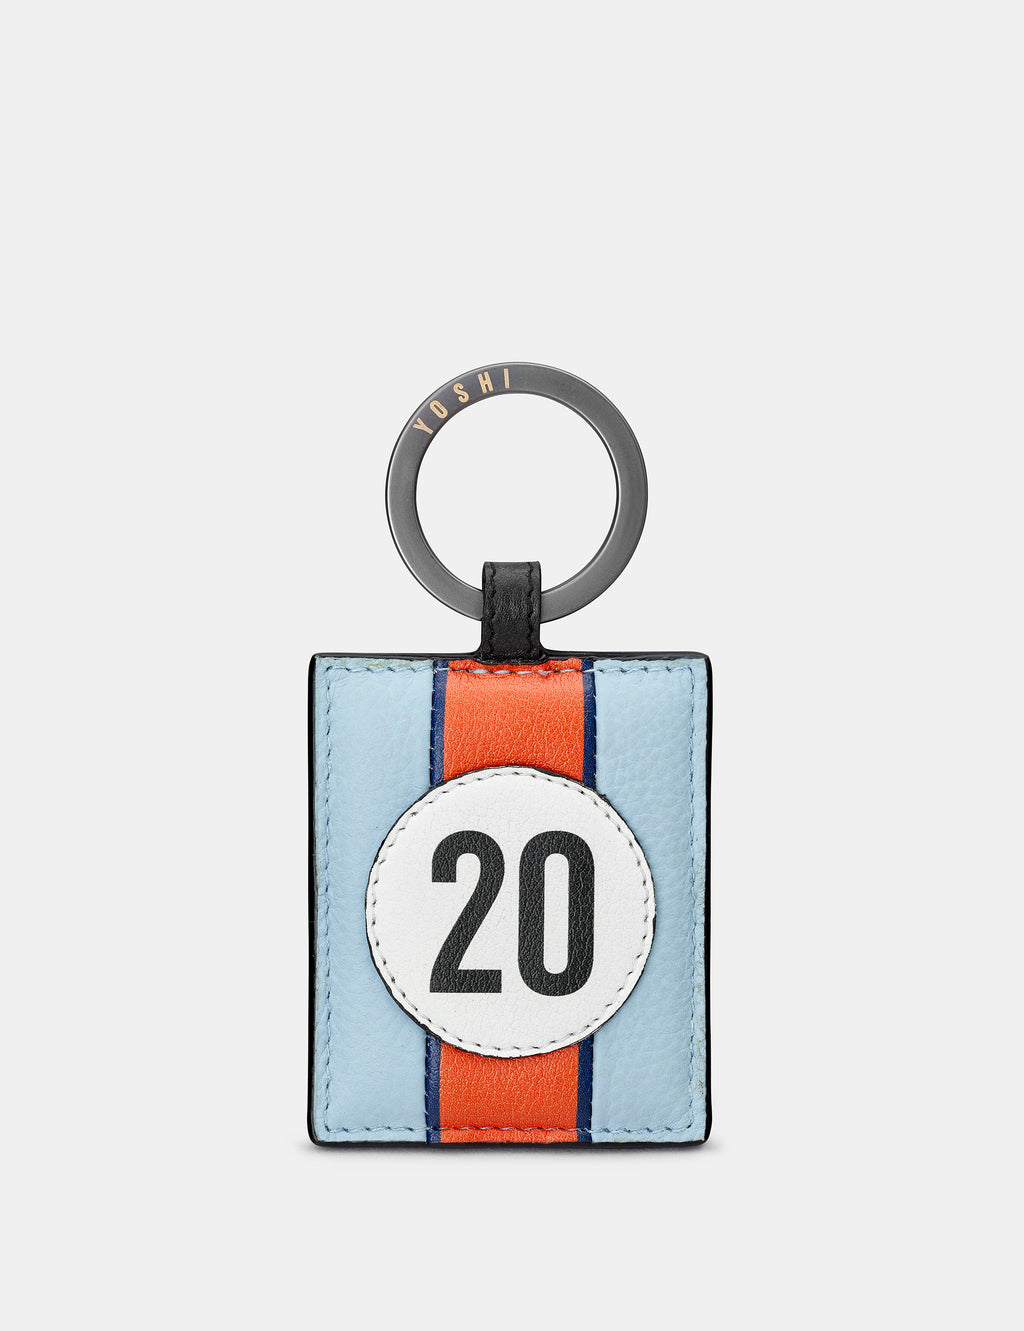 Car Livery No. 20 Leather Keyring